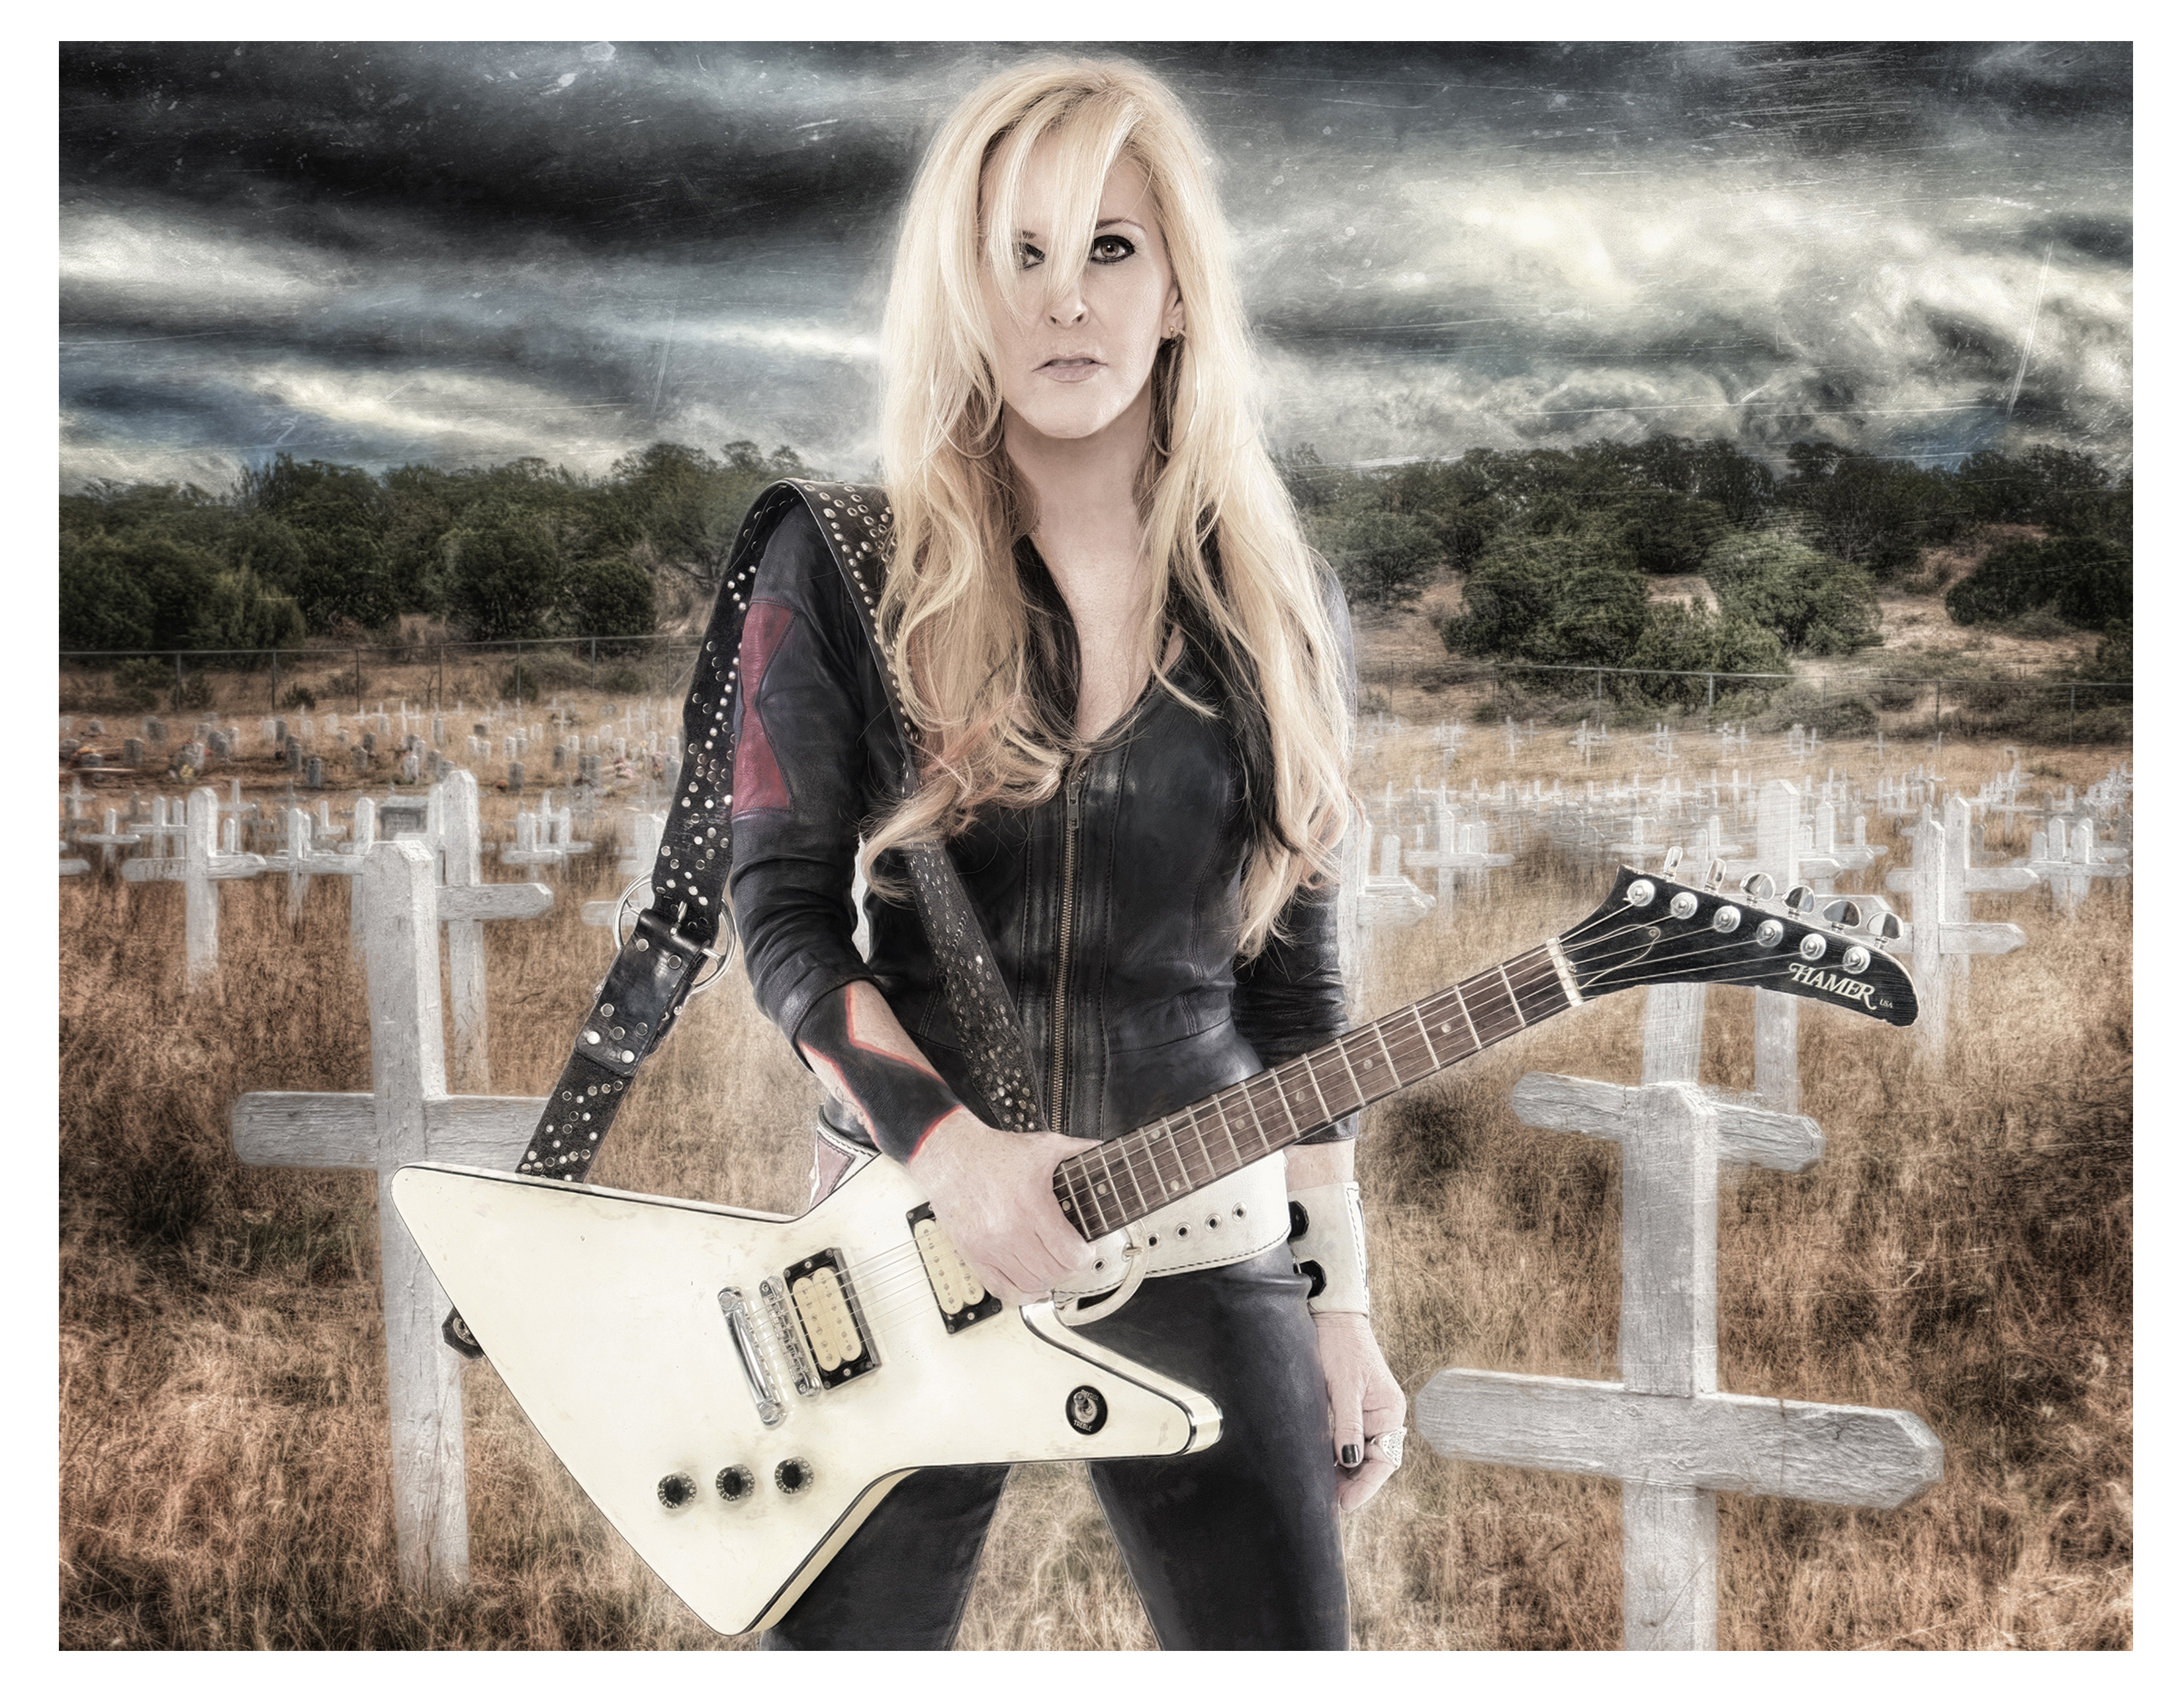 Interview: The Legacy of Lita Ford